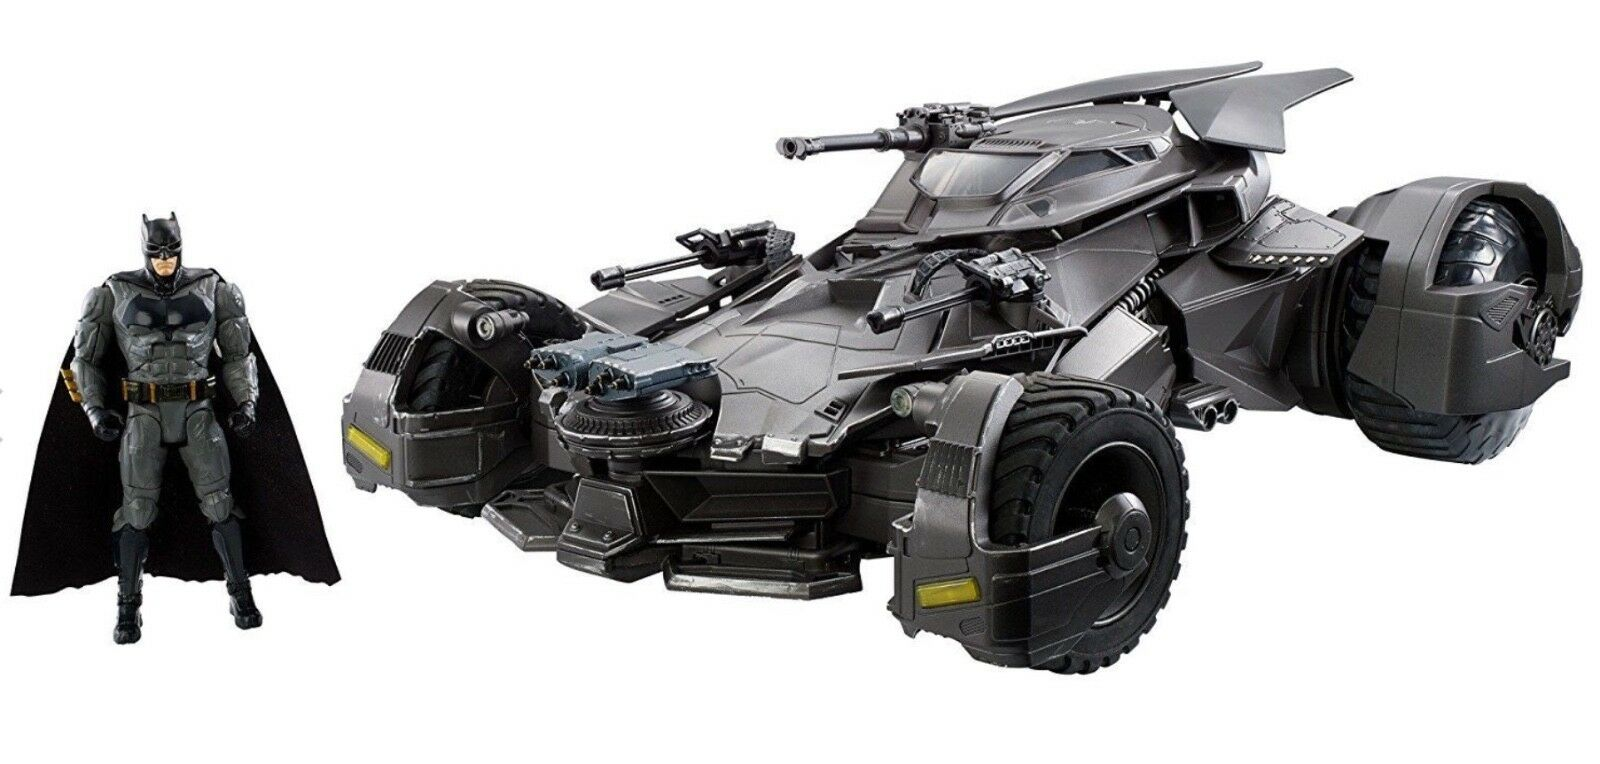 NEW JUSTICE LEAGUE FTD33 ULTIMATE RC (RADIO CONTROLLED) BATMOBILE WITH FIGURE